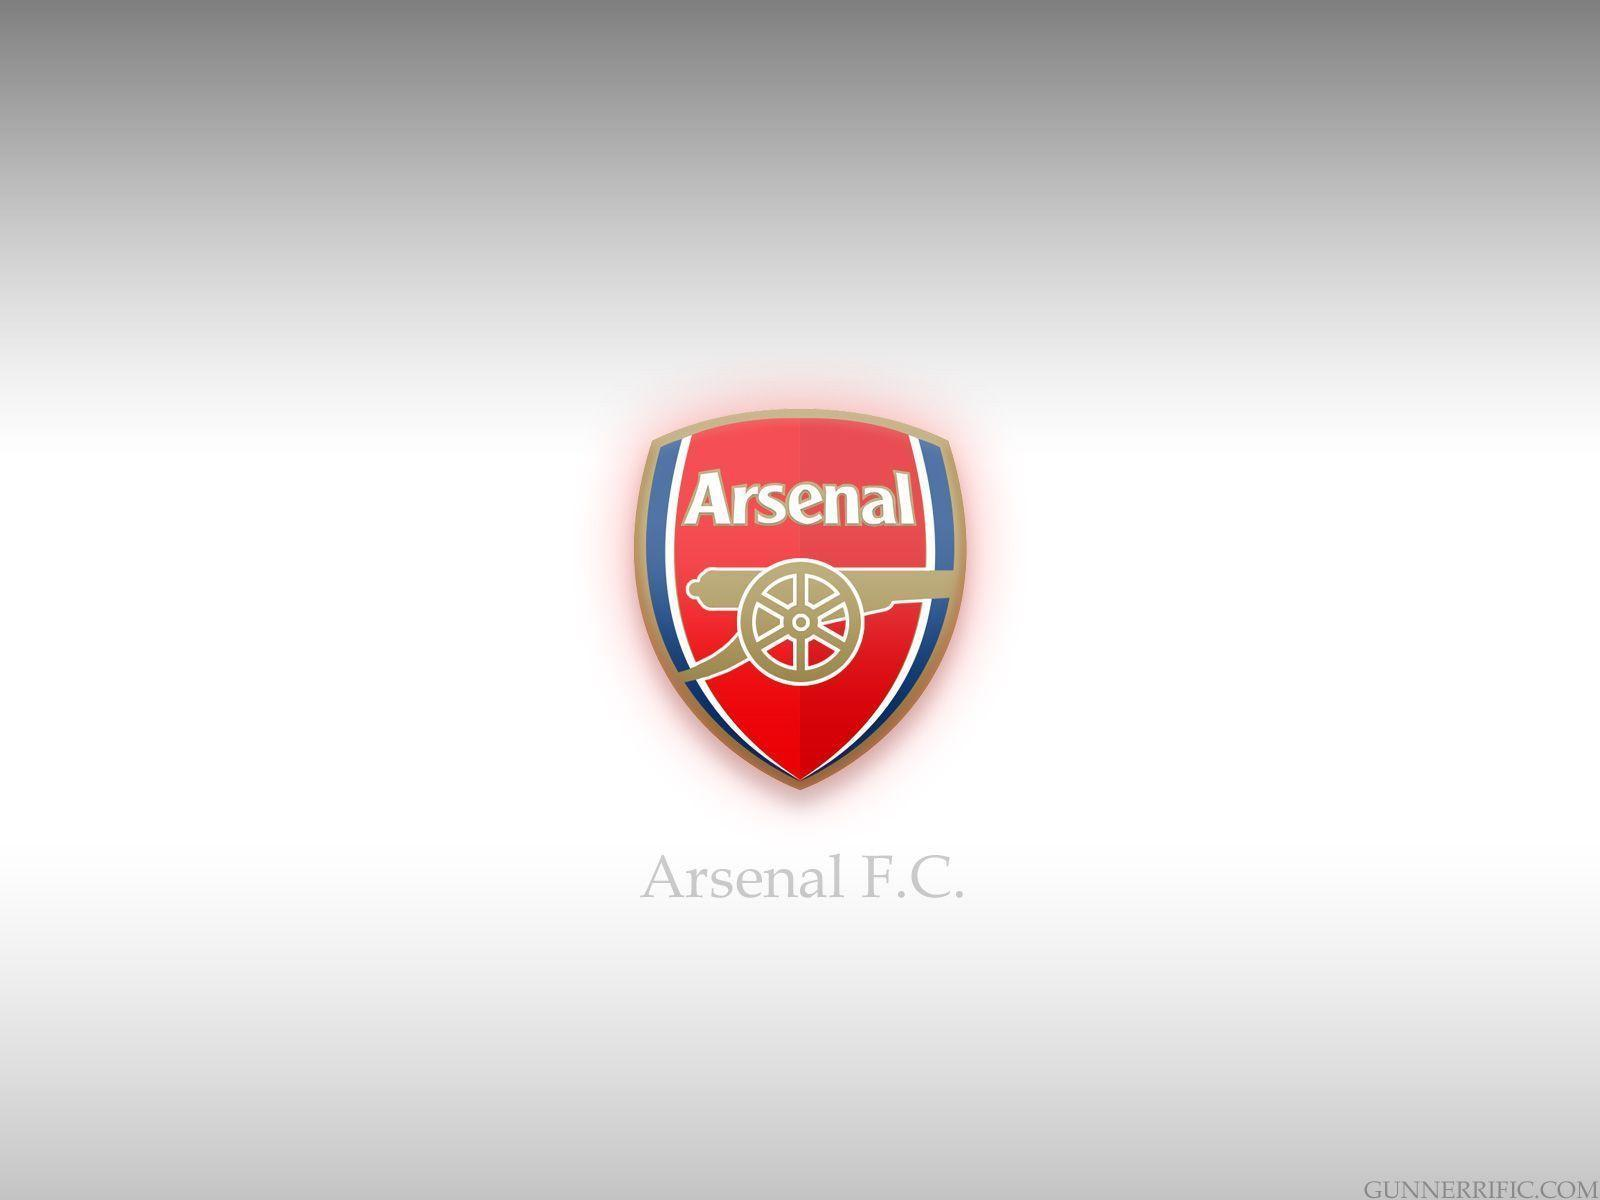 arsenal logo cool wallpaper hd | Wallput.com